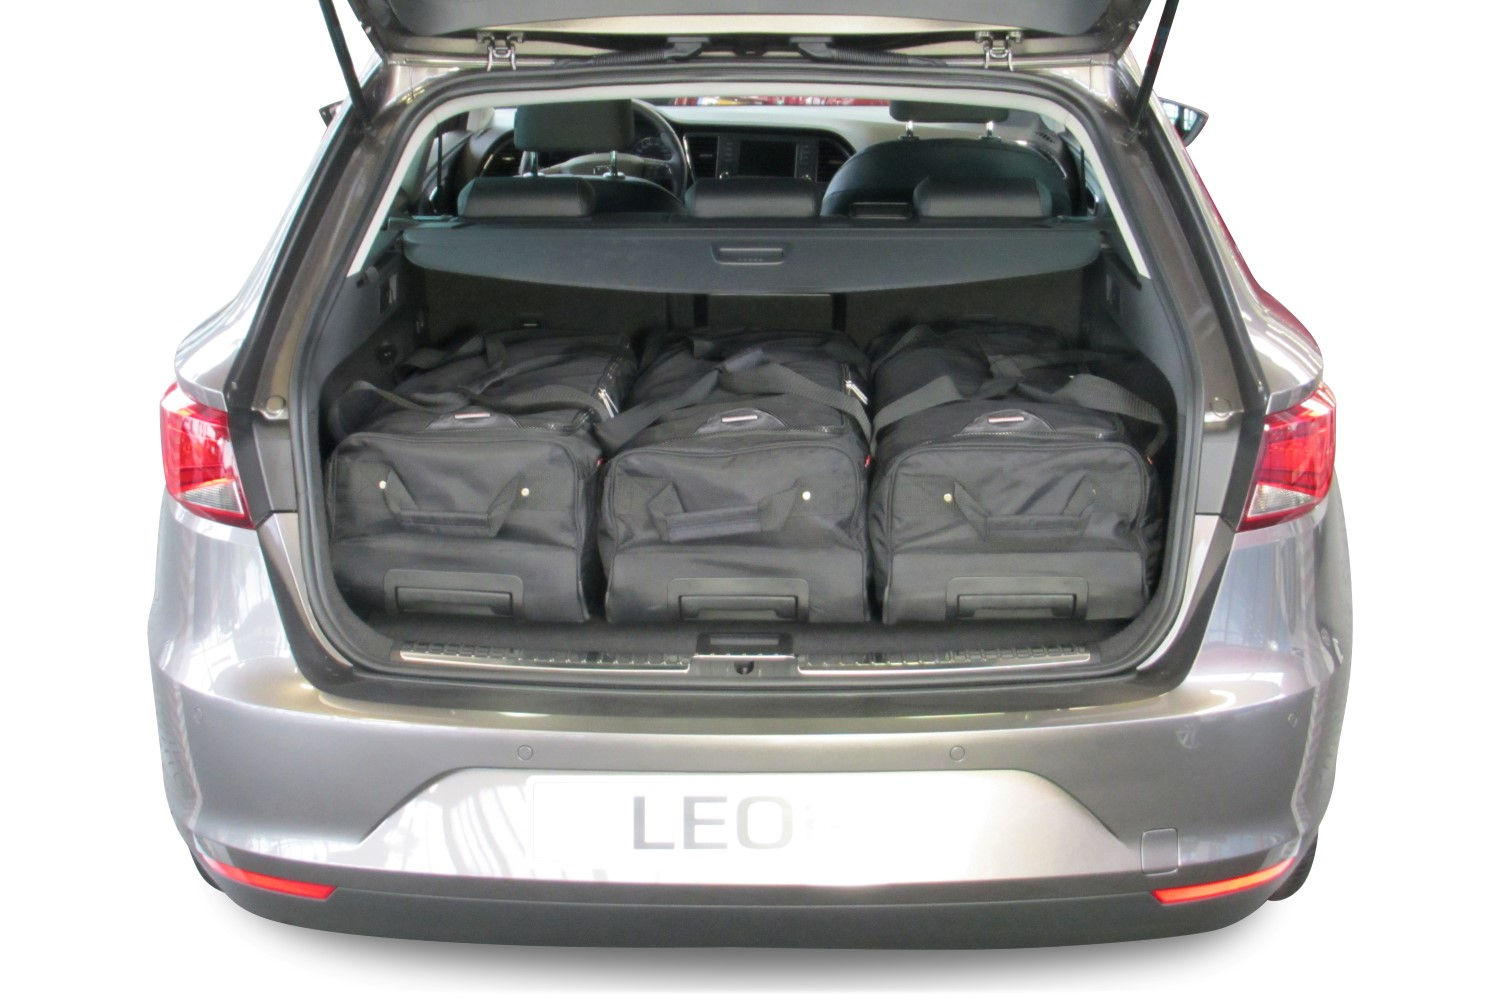 leon seat leon st 5f 2014 pr sent car bags set de sacs de voyage. Black Bedroom Furniture Sets. Home Design Ideas